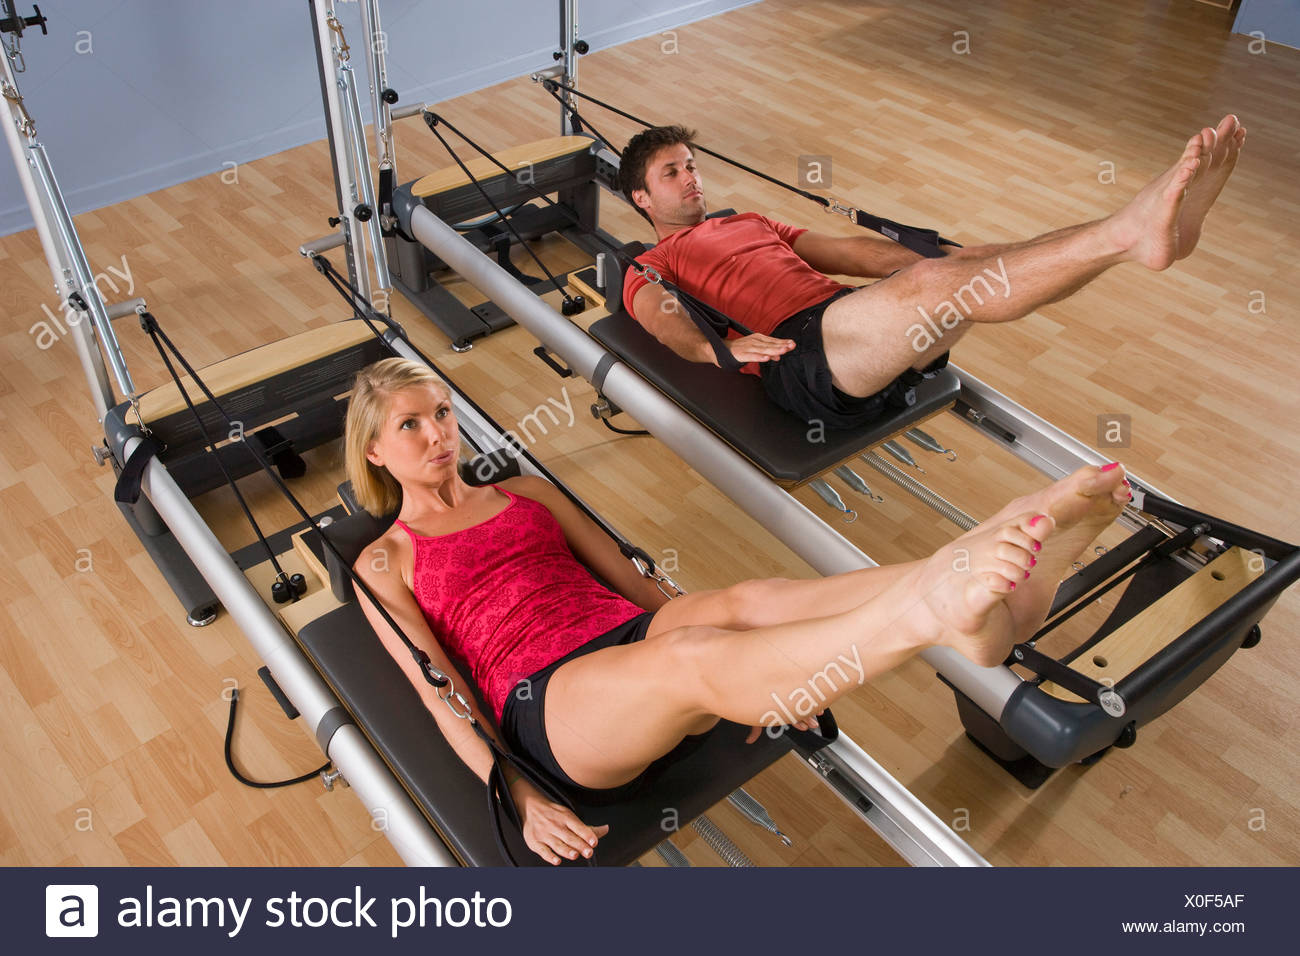 Young couple working out on Pilates exercise equipment in gym - Stock Image